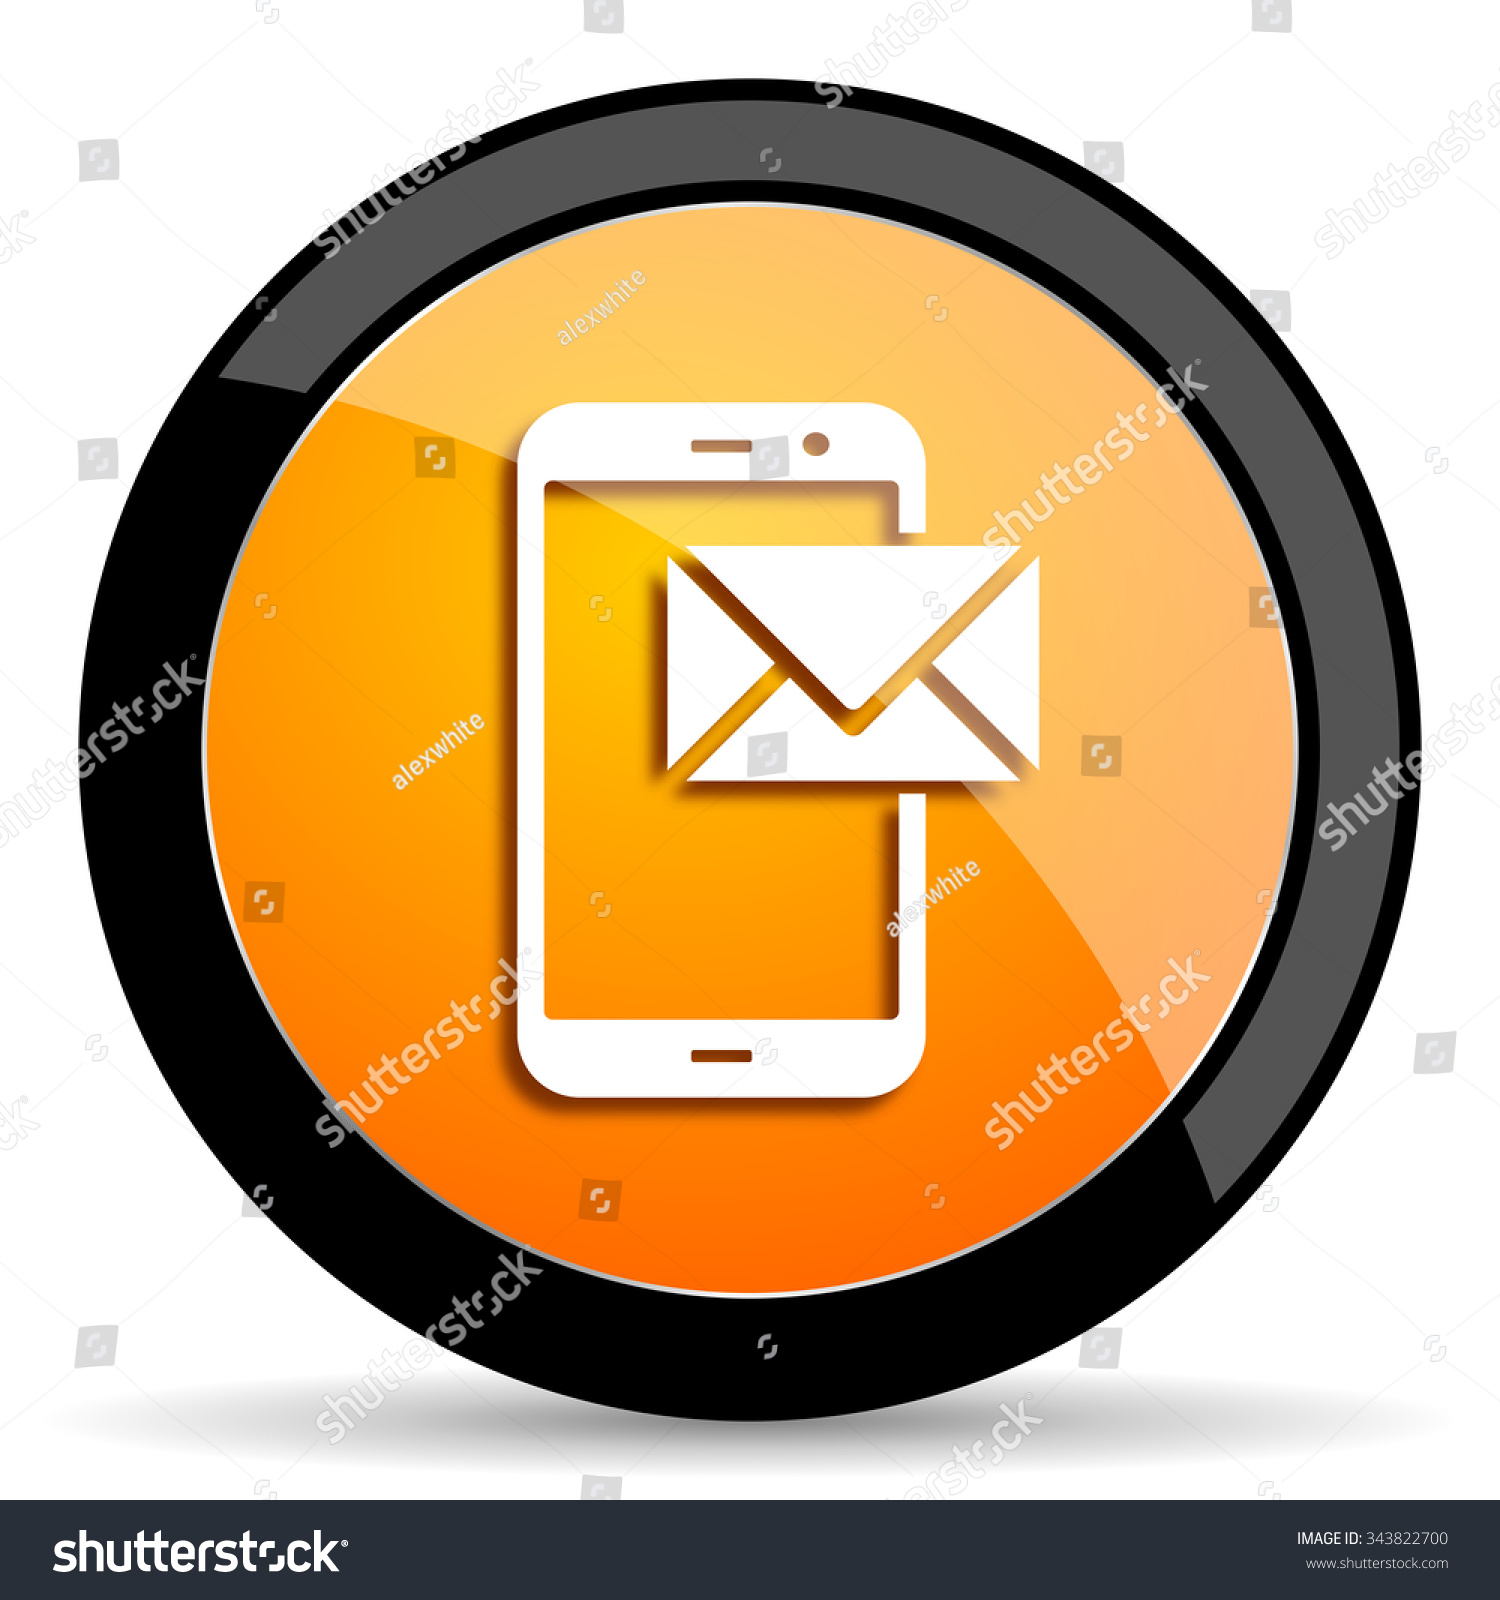 mail orange icon #343822700